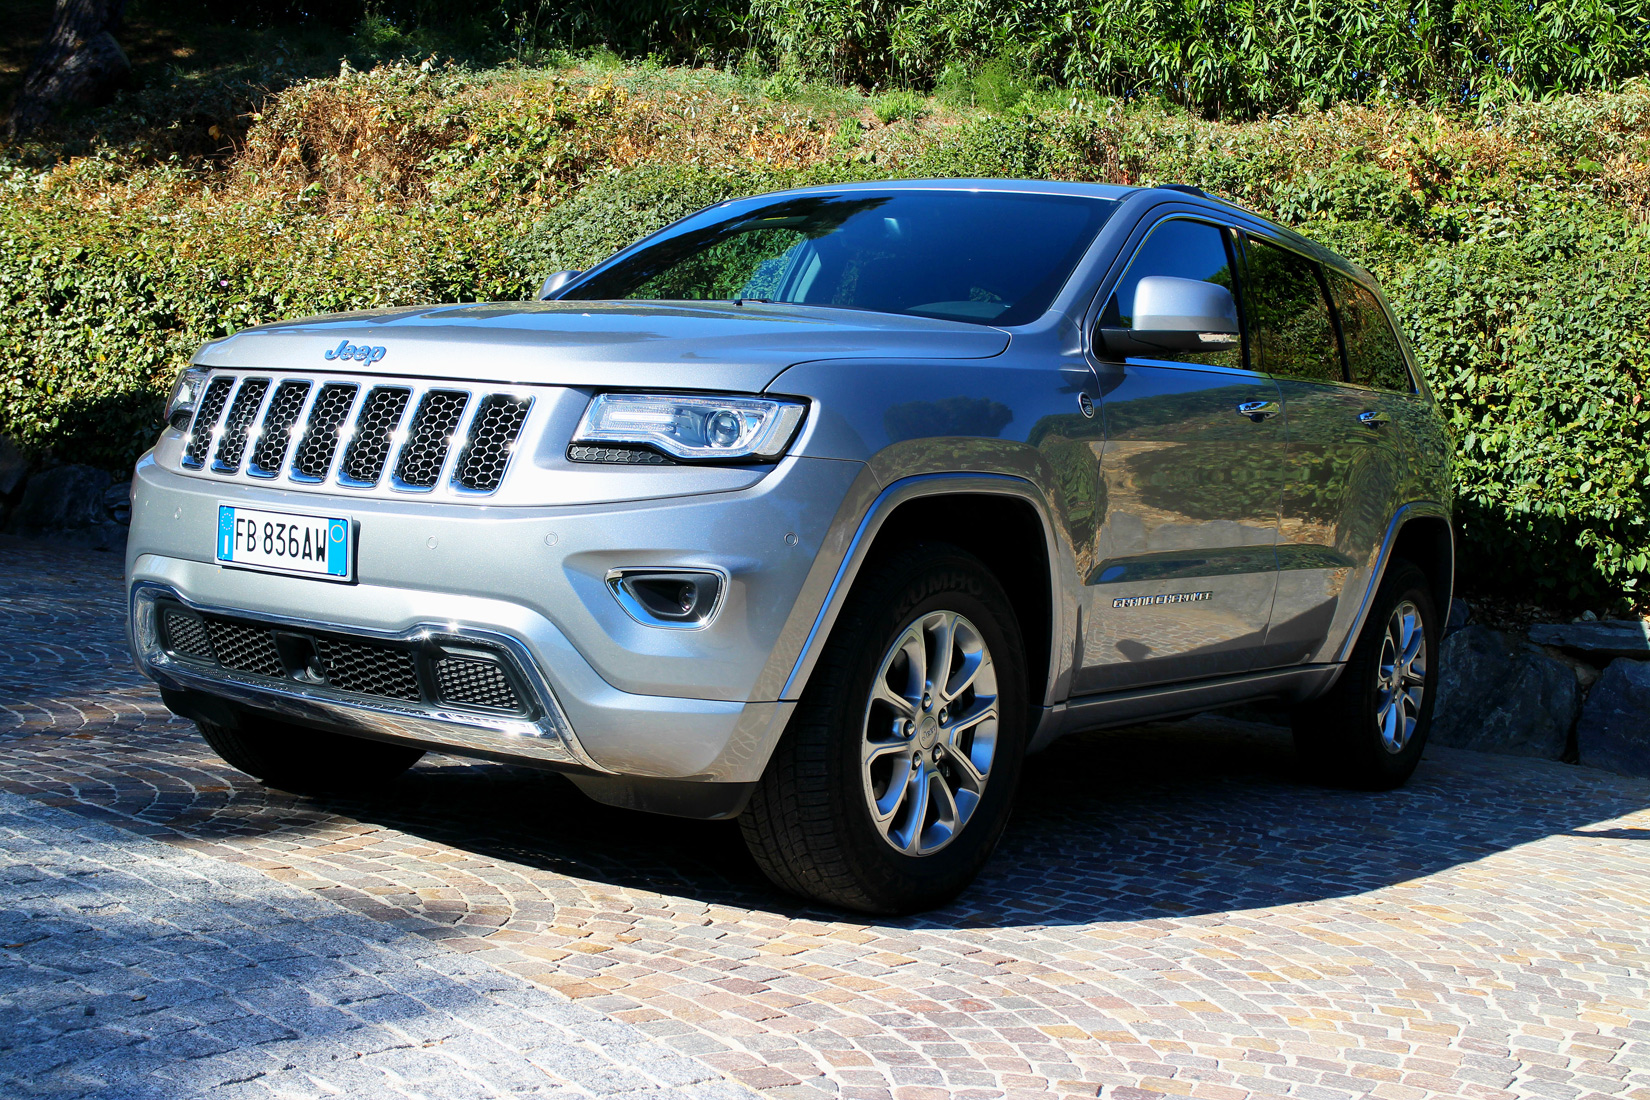 Jeep Grand Cherokee 3.0 V6 CRD Overland Road Test In St.Tropez 8